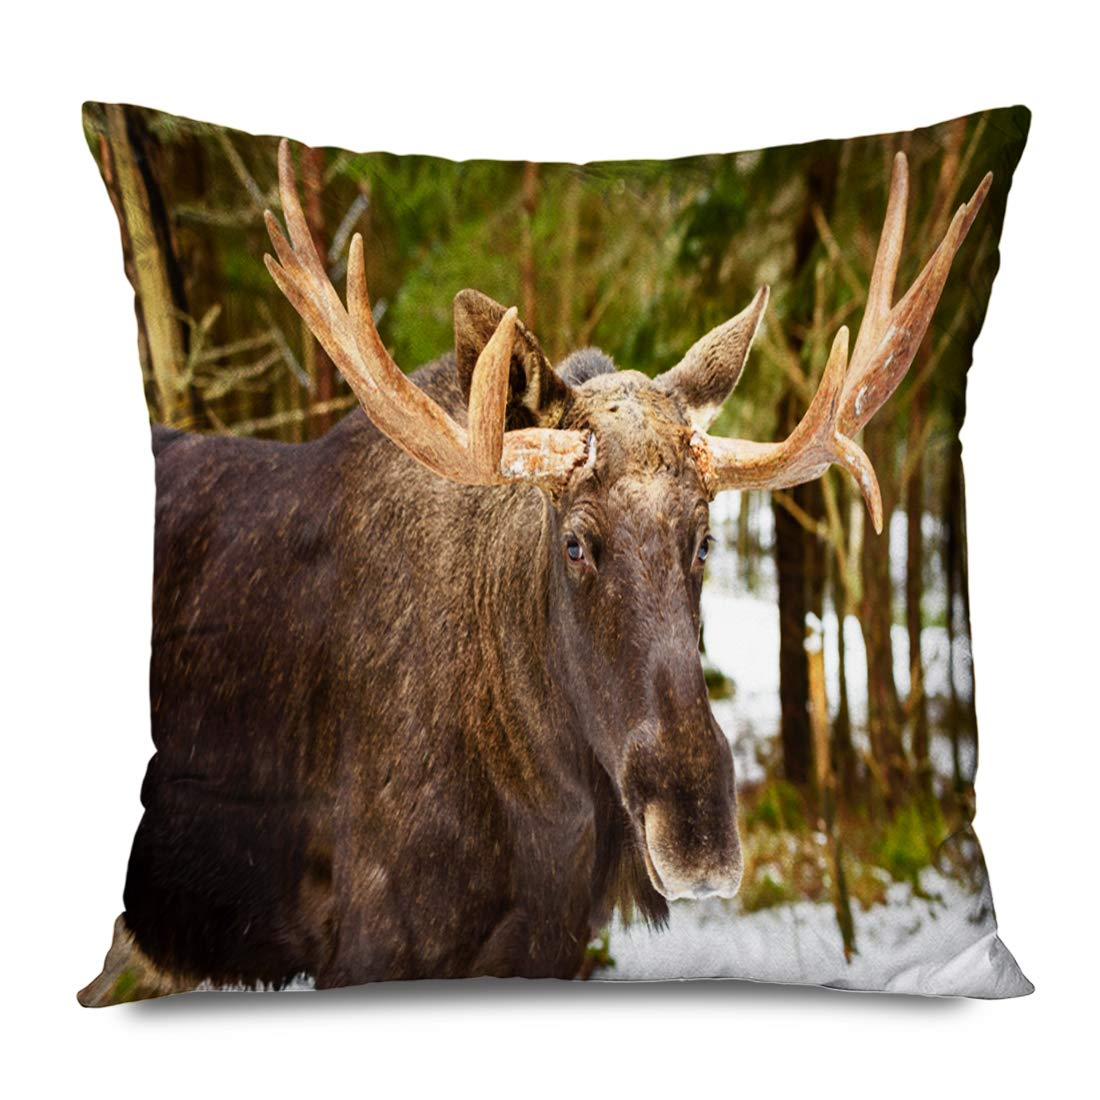 Ahawoso Throw Pillow Cover Square 16x16 Inches Wild Snow Europe Moose Winter Alces Taiga Spring Bull Forest Woodland Terrain Woods Brown Ecology Decorative Pillowcase Home Decor Cushion Case